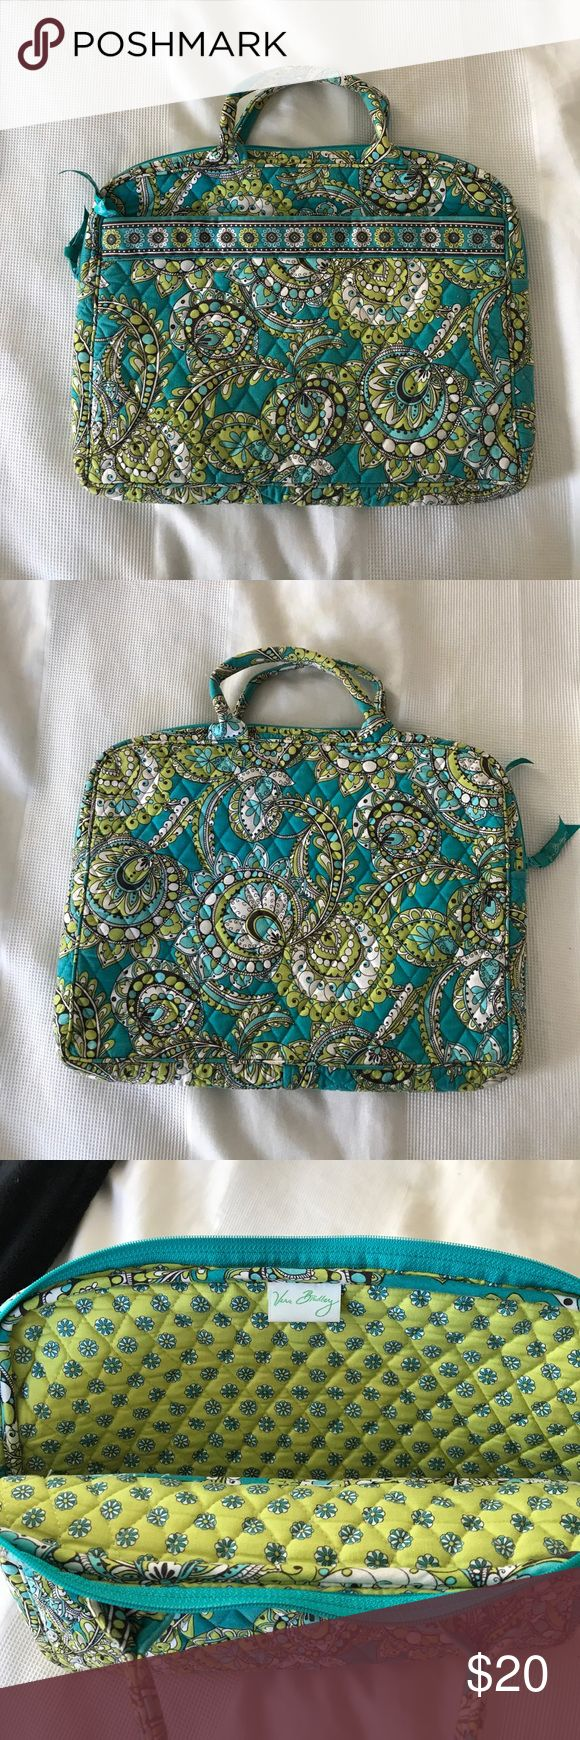 Vera Bradley Laptop Case Vera Bradley laptop case in teal, lime green and white.  Soft carrying case with 2 handles. Front zipper pocket perfect for charging cords. Vera Bradley Bags Laptop Bags